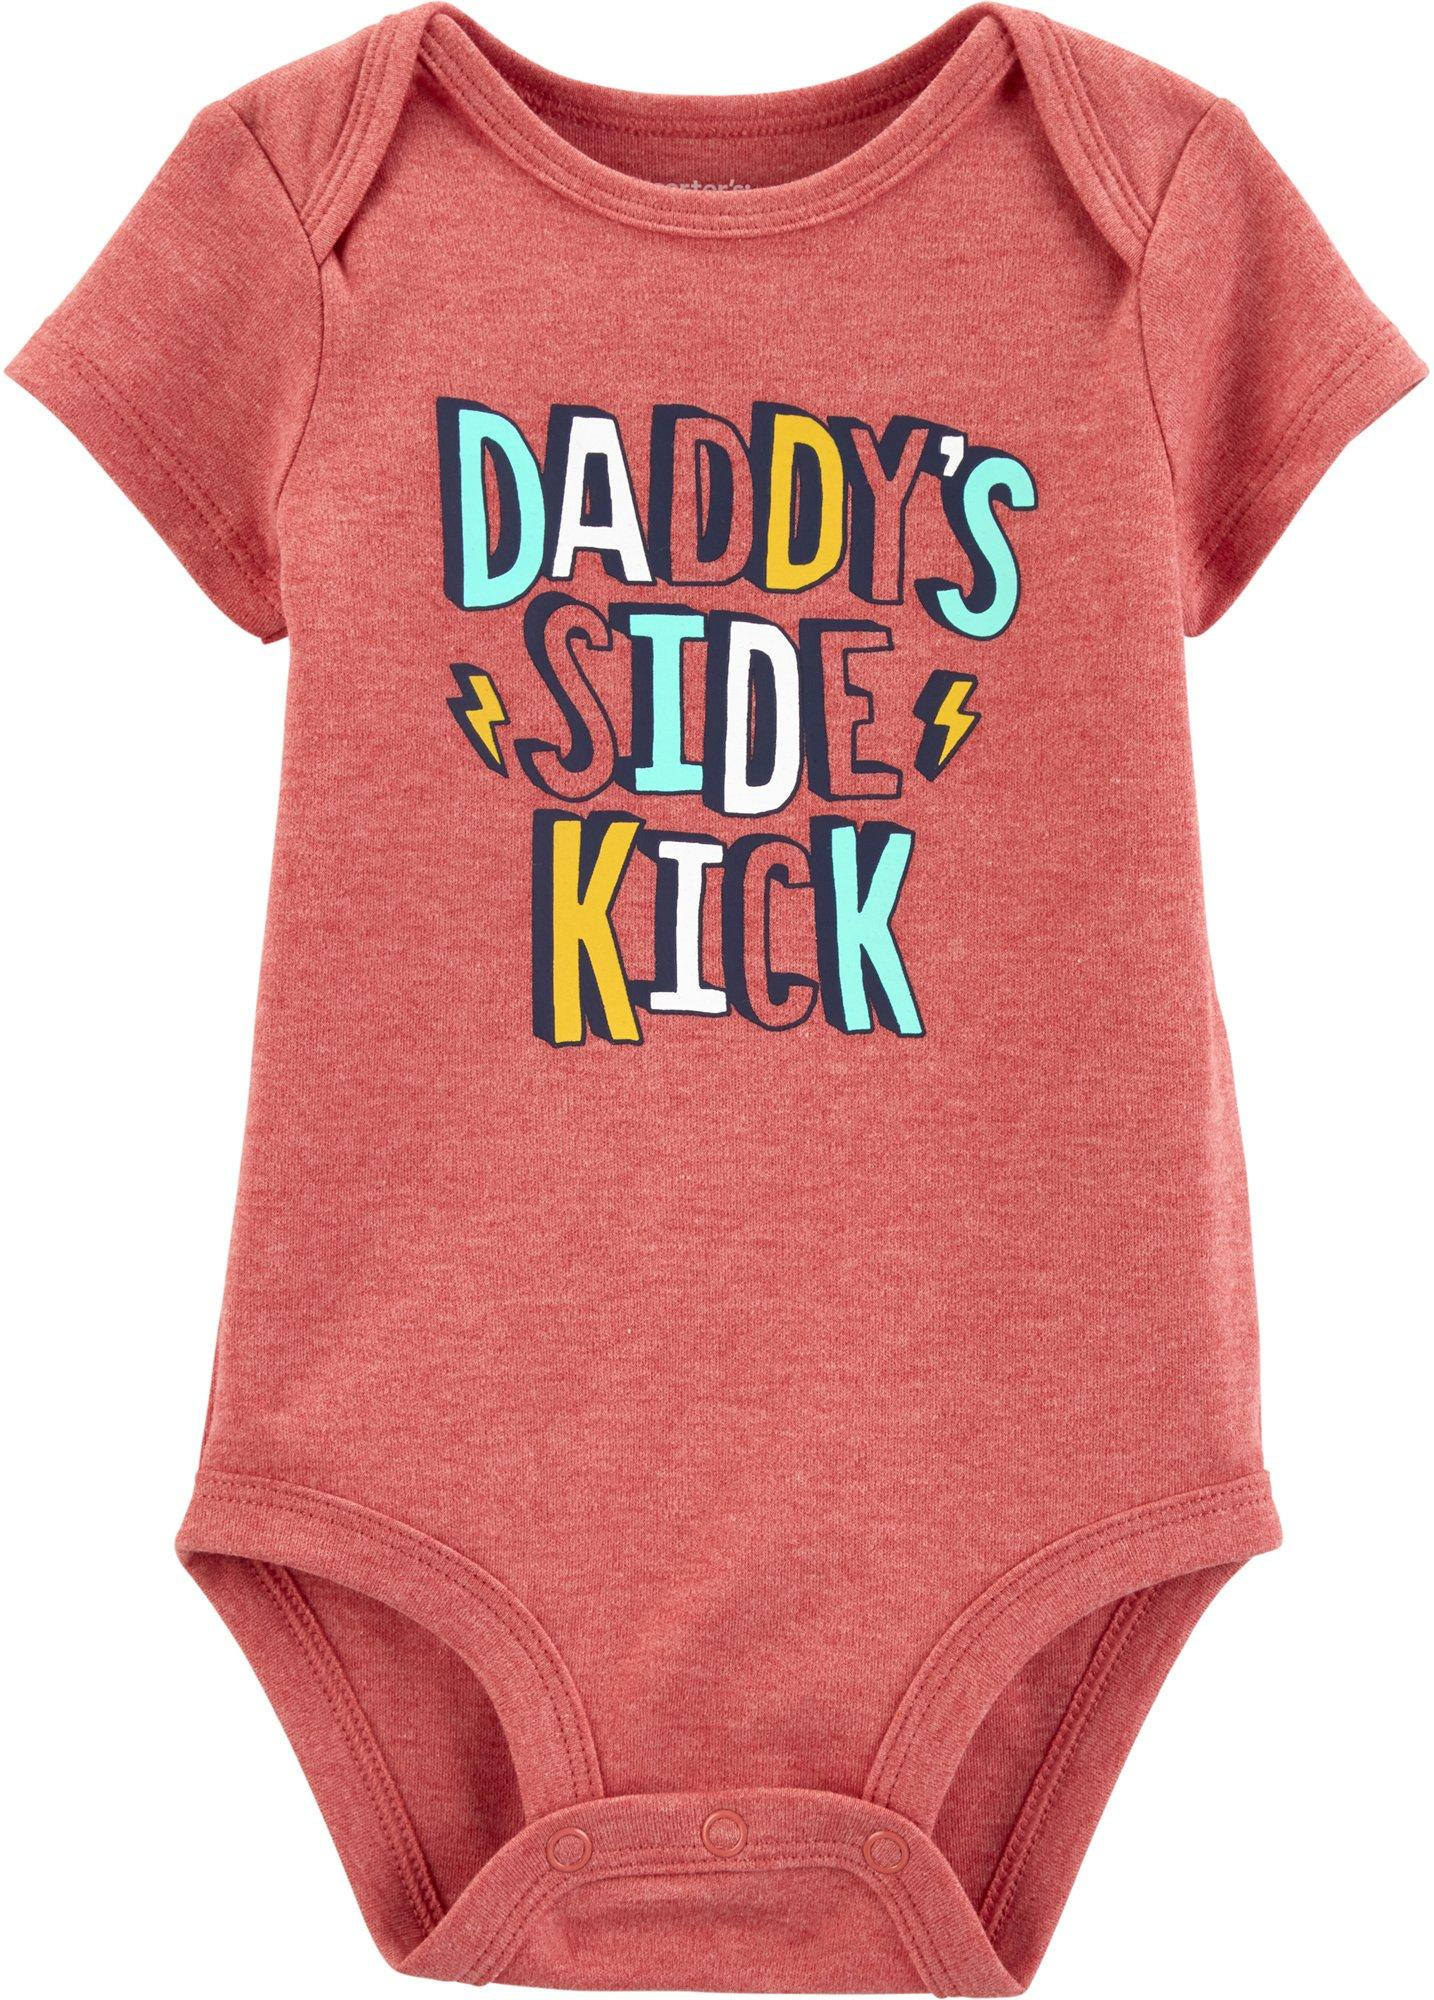 newborn clothes baby boy clothes sidekick onesie baby baby girl clothes coming home outfit onesie Daddy/'s Little Sidekick Onesie